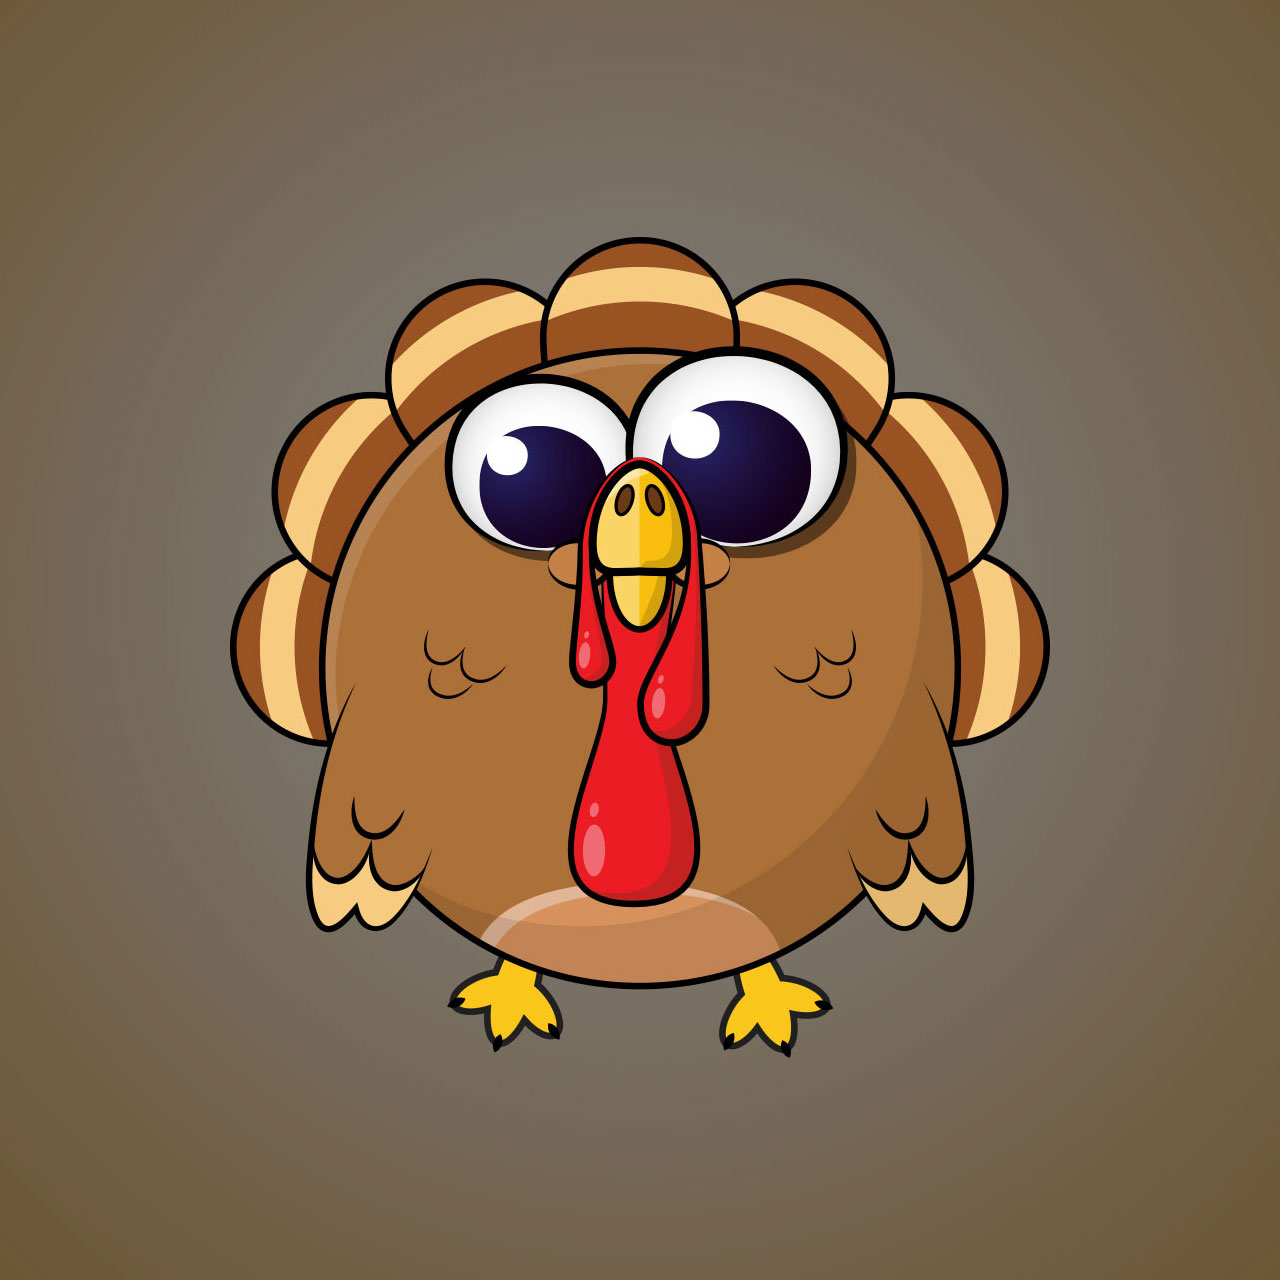 Turkey Minimal Vector Character Design For A Casual Mobile Game